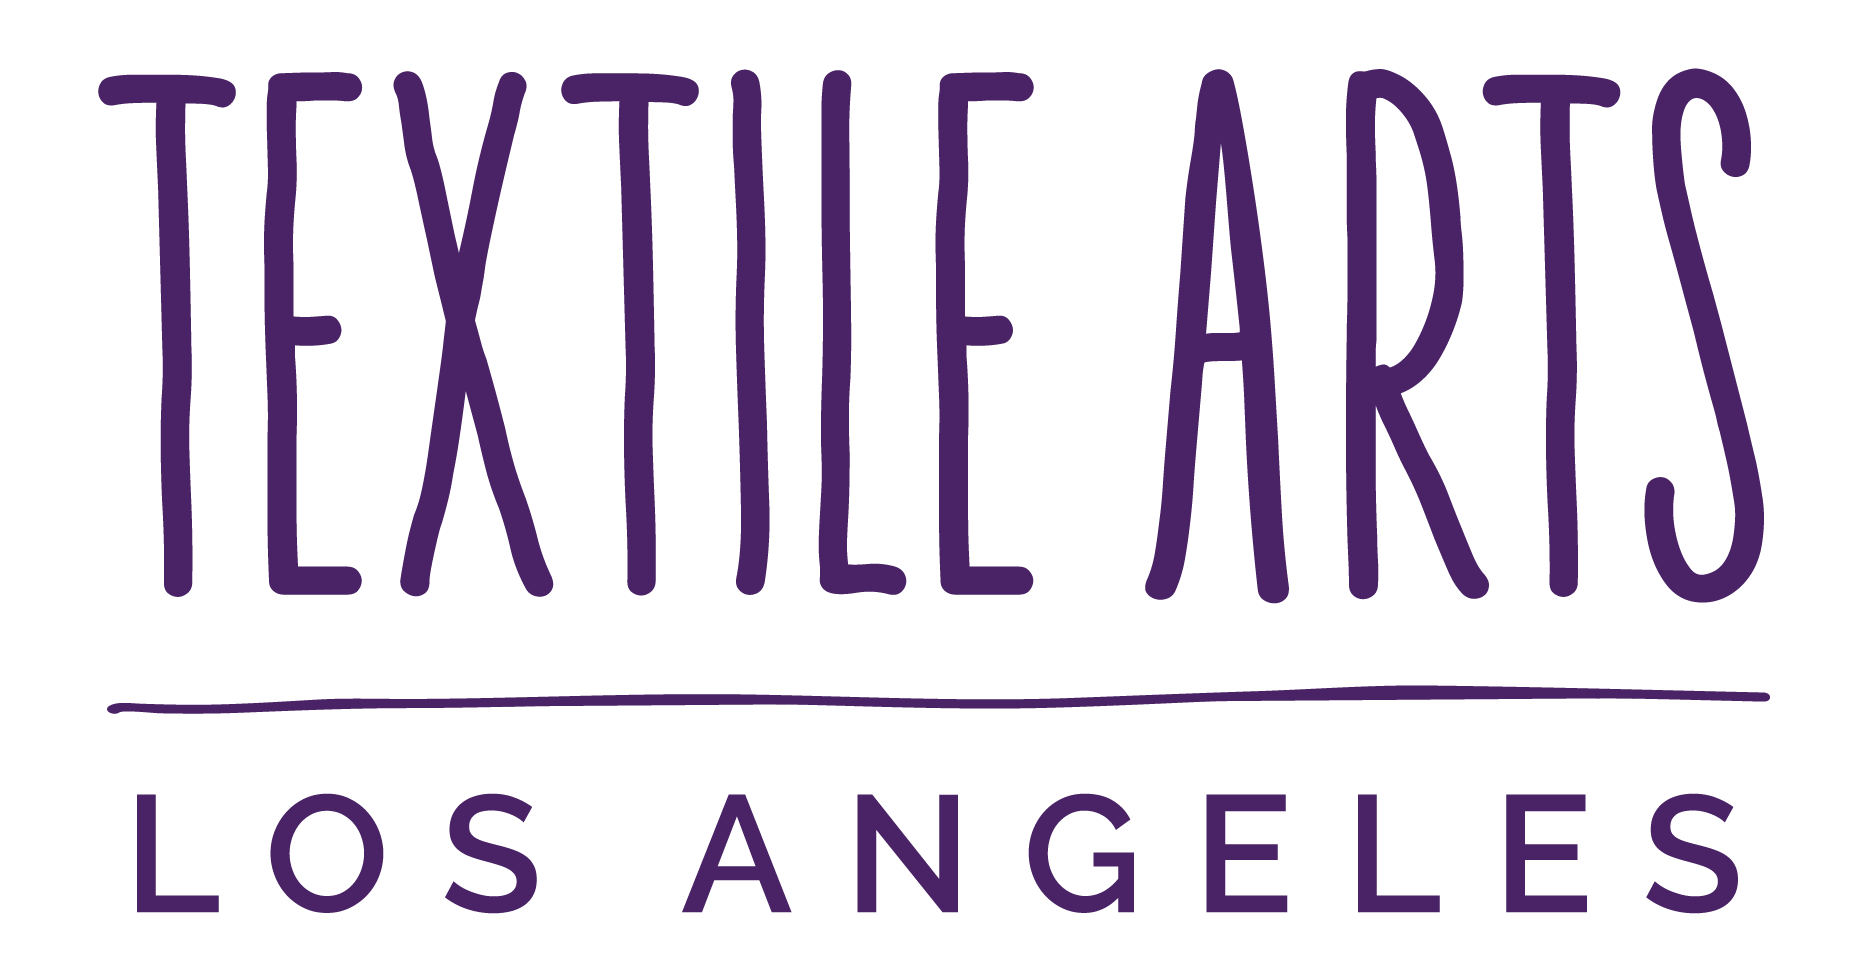 Textile Arts | Los Angeles , Los Angeles  textile art and design, workshops, advocacy